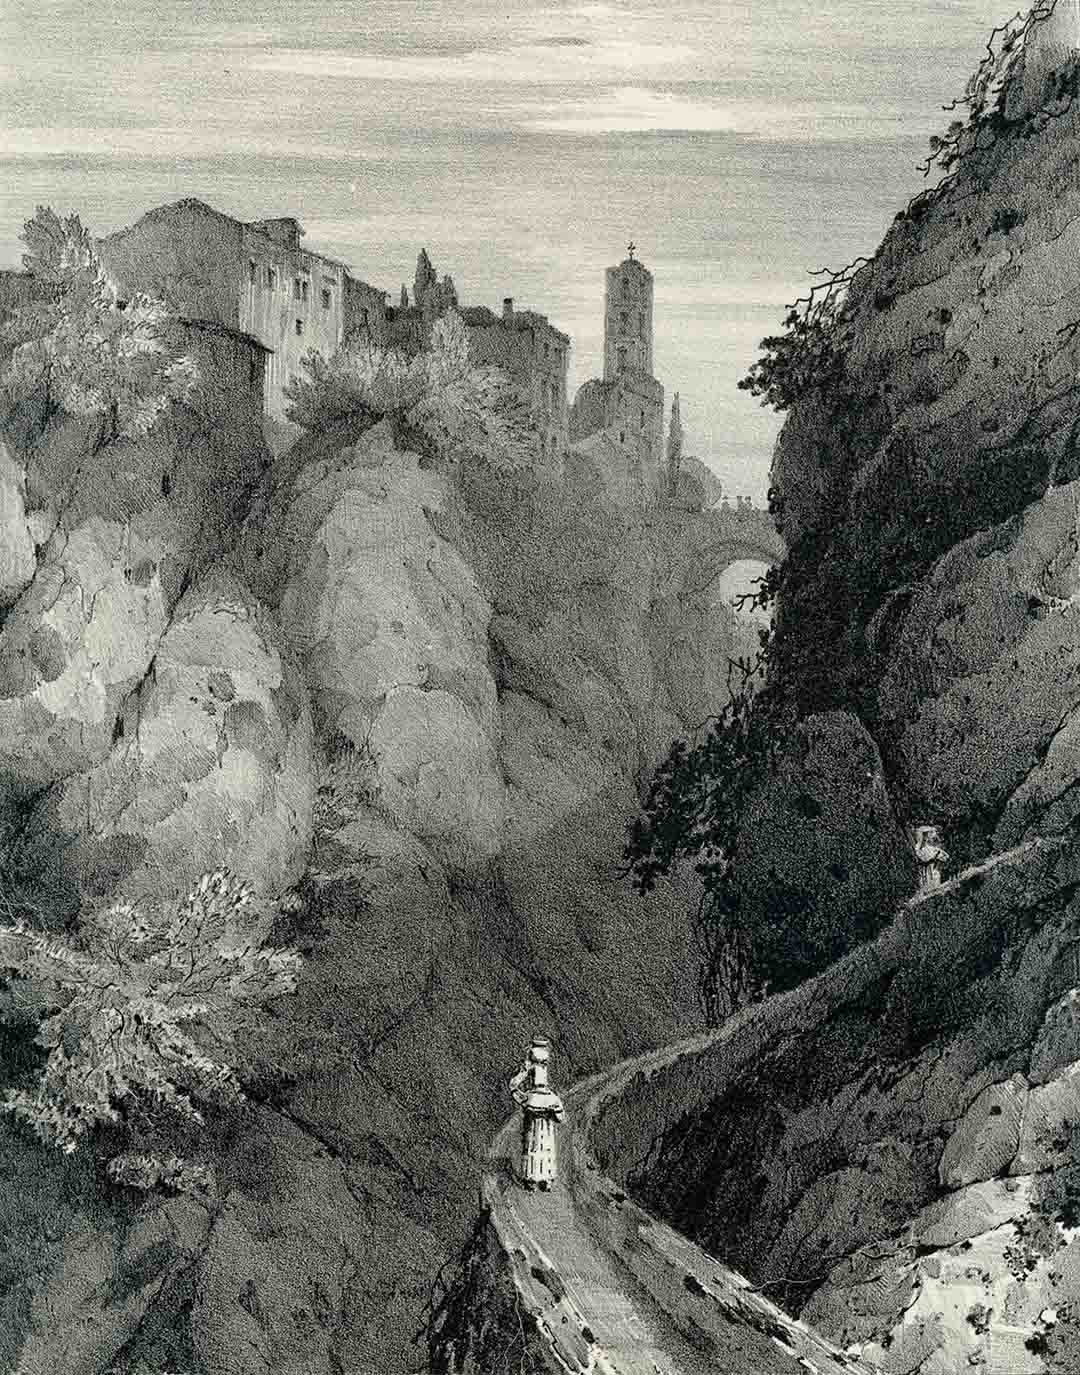 William LINTON (1791-1876) - William DAY (1797 - Londra 1845), Ravine at Sorrento